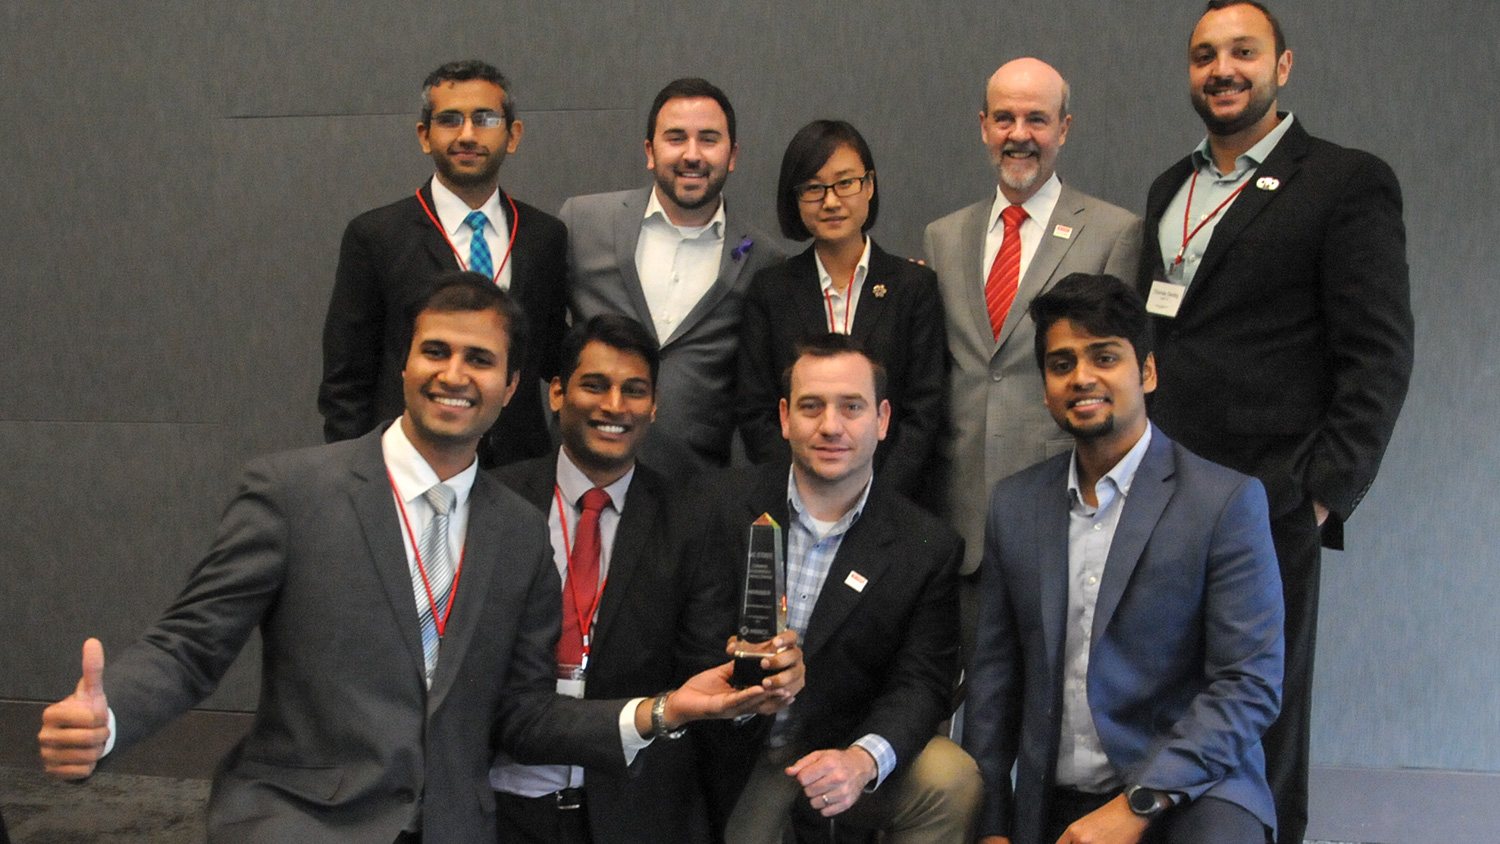 Photo of First place Boston University Questrom School of Business MBA students with their NC State Jenkins MBA 'assist' team